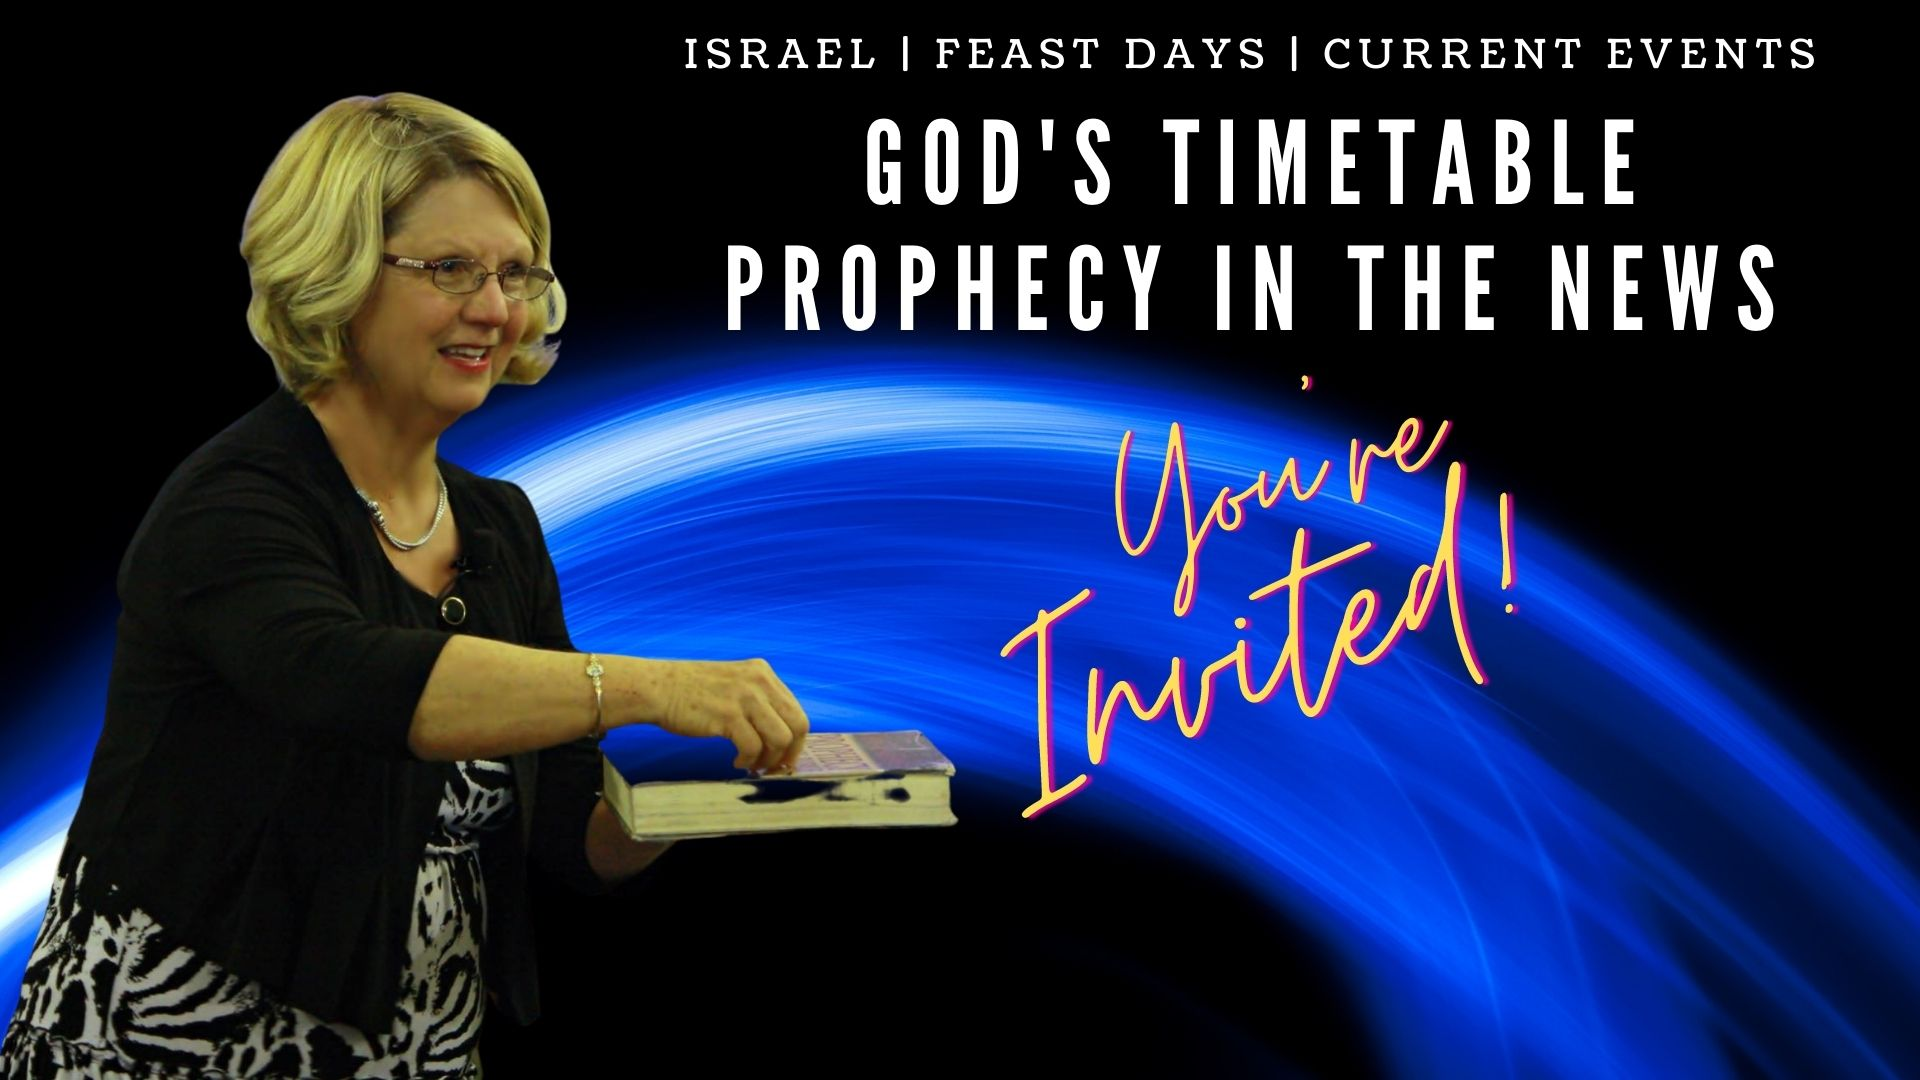 God's Timetable of Events